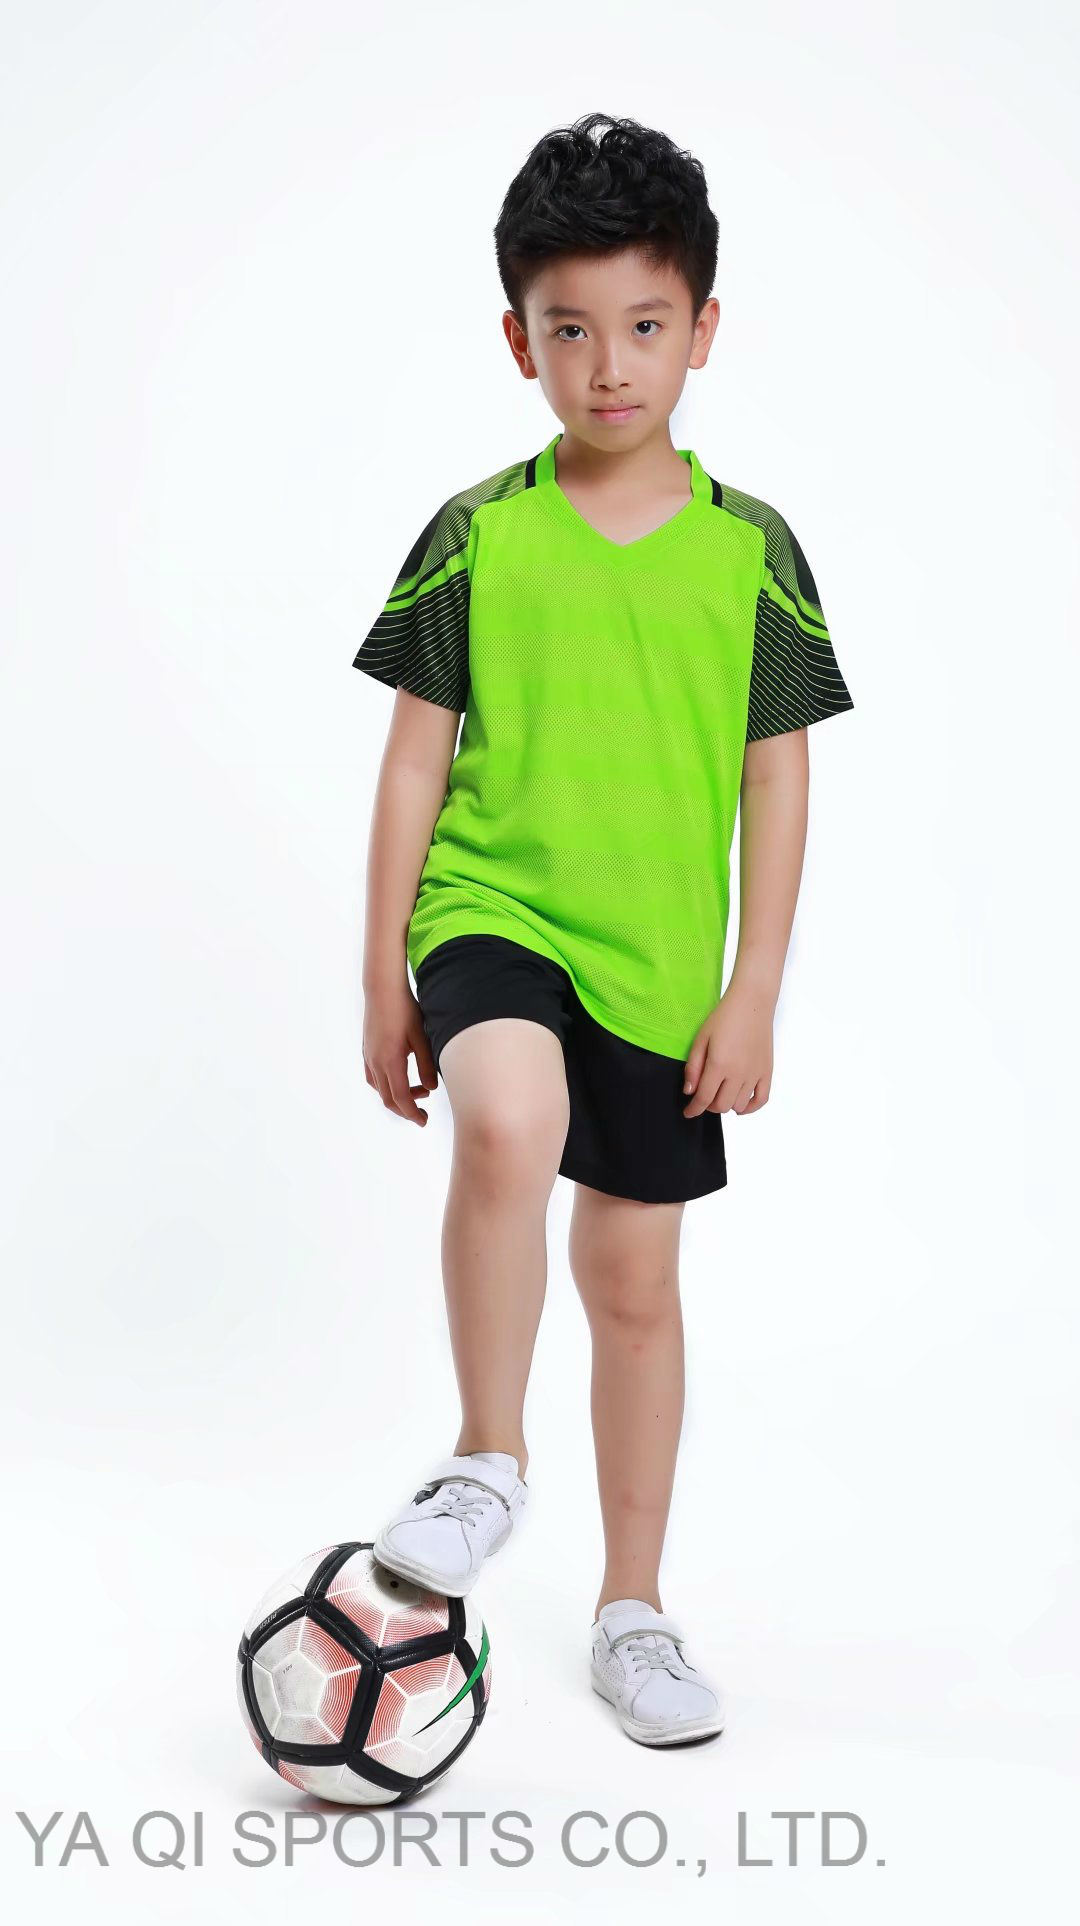 72c16288b6b Alibaba Jerseys Wholesale Football Club Baby Romper Best Quality Soccer  Kids Clothes Uniform Custom Sports Jersey New Model